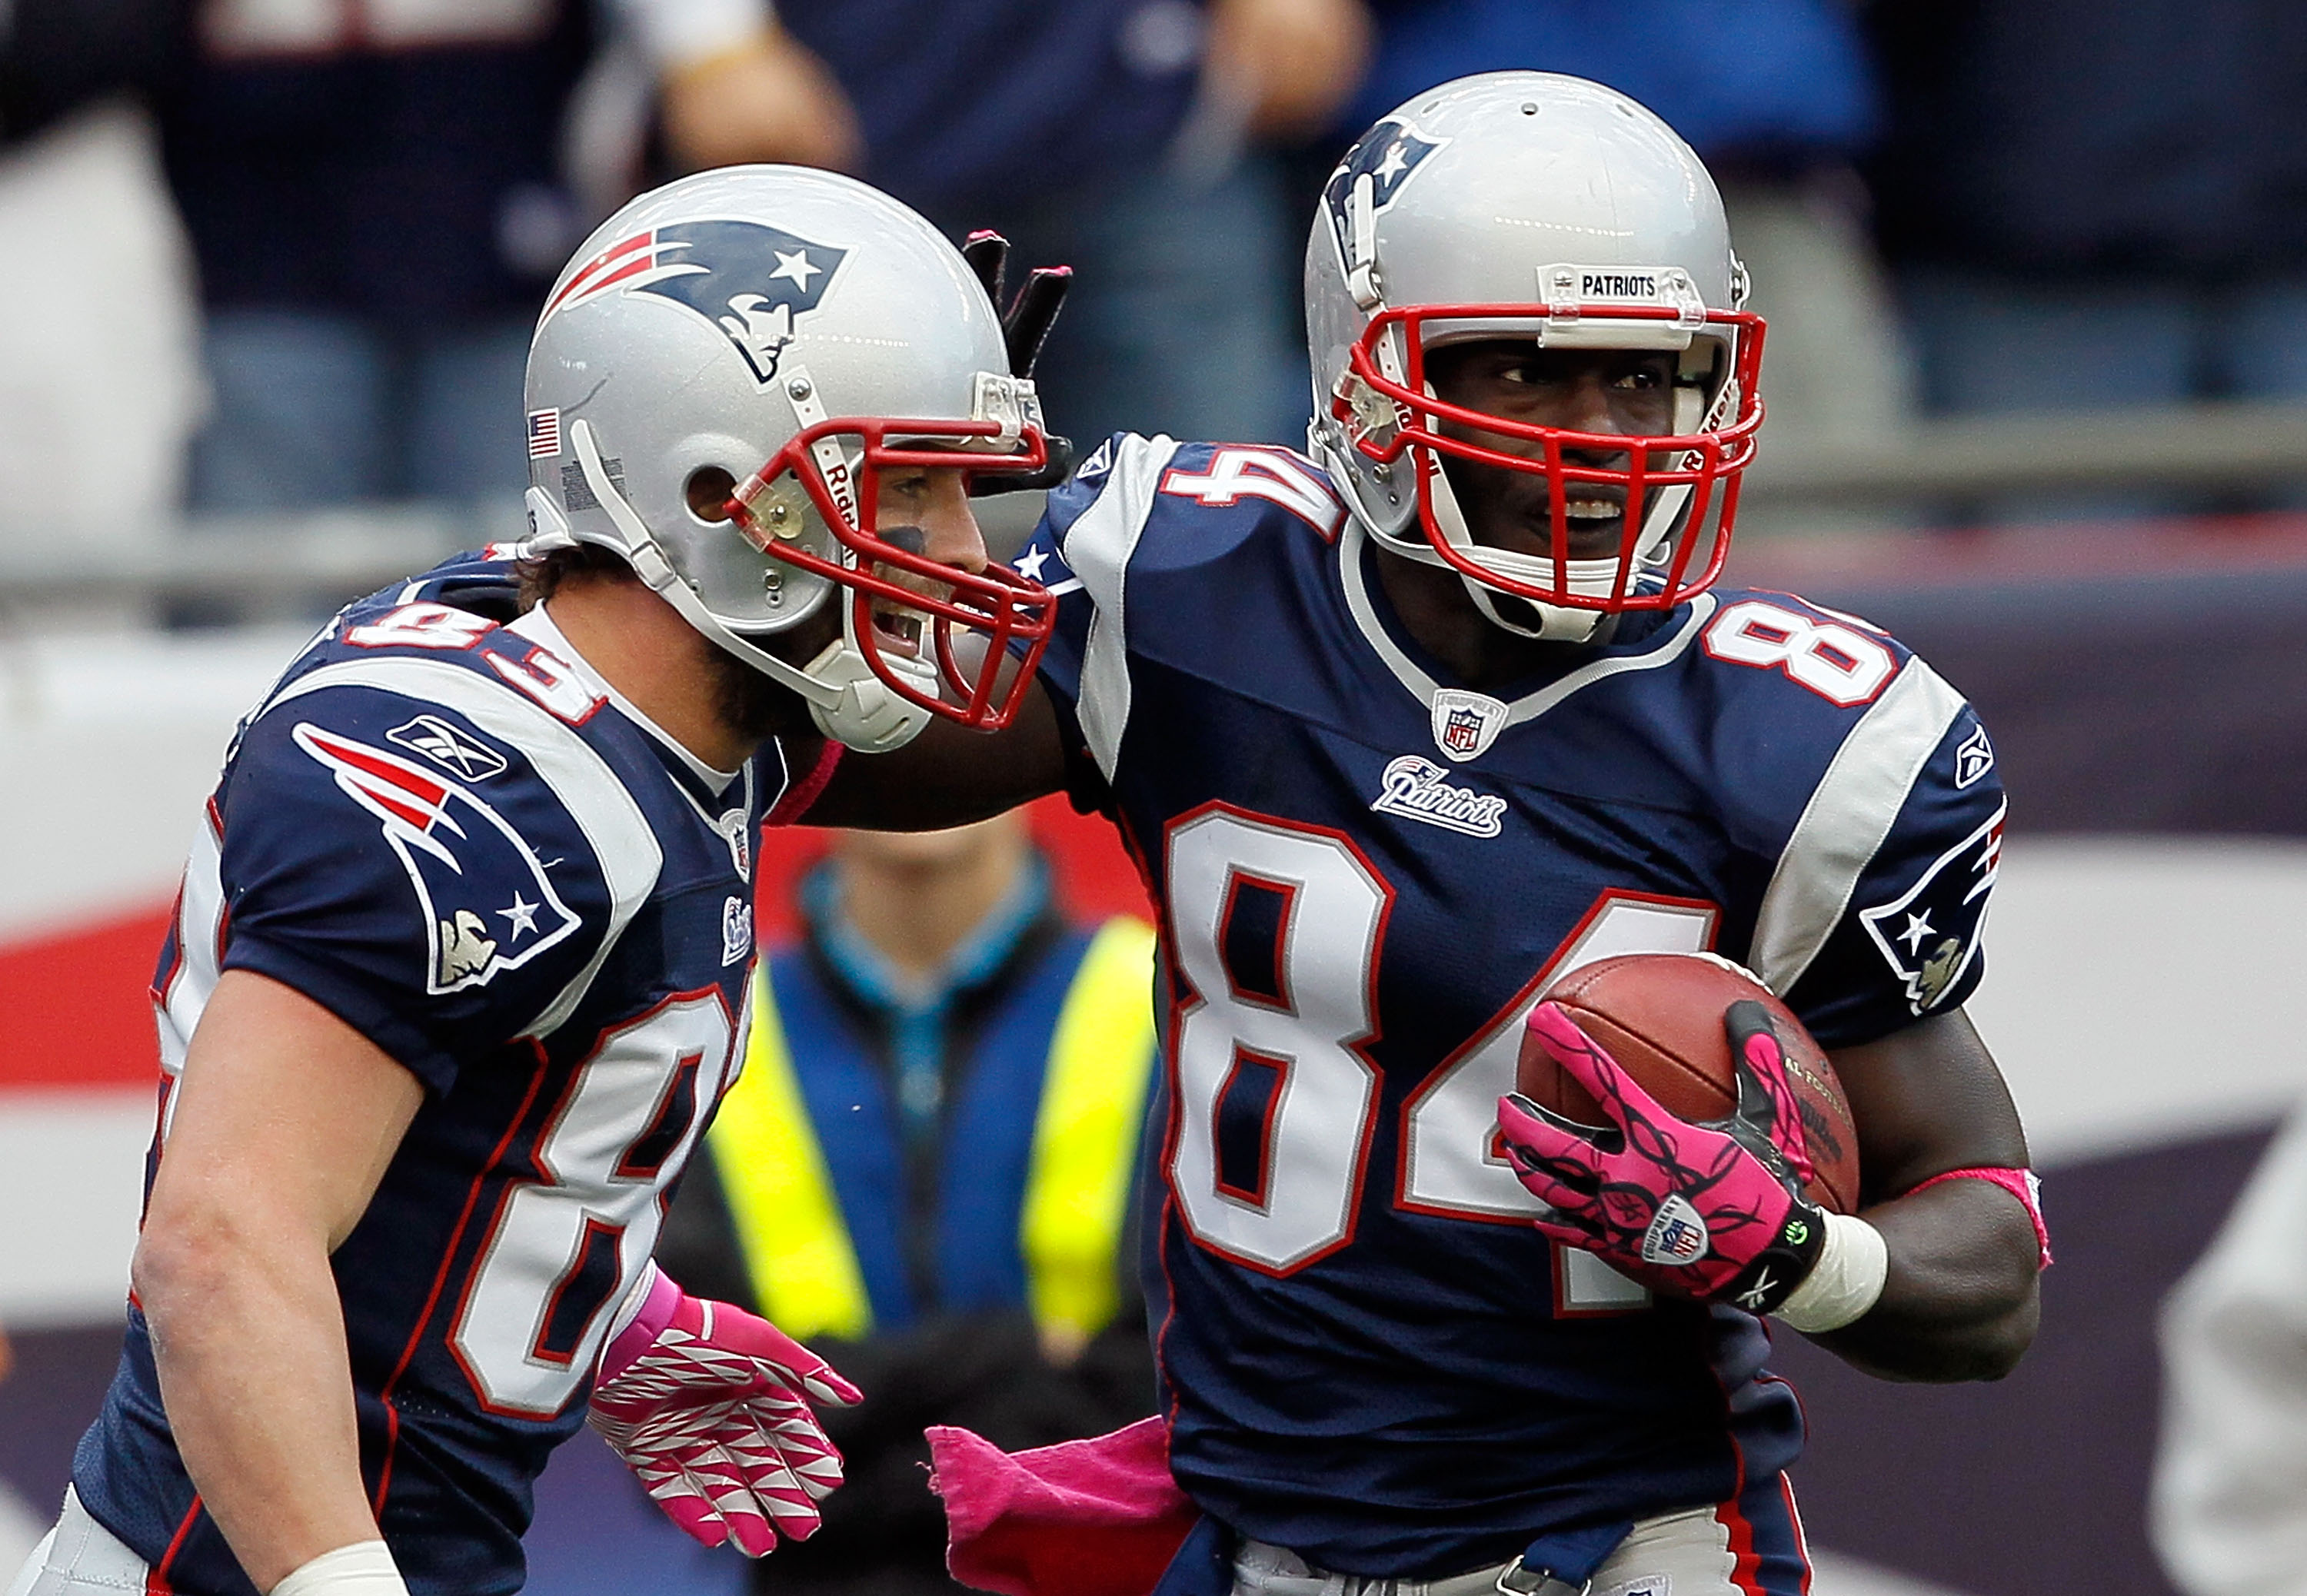 2b1c4f33 Deion Branch Comes Back Strong for New England Patriots in Win Over Ravens